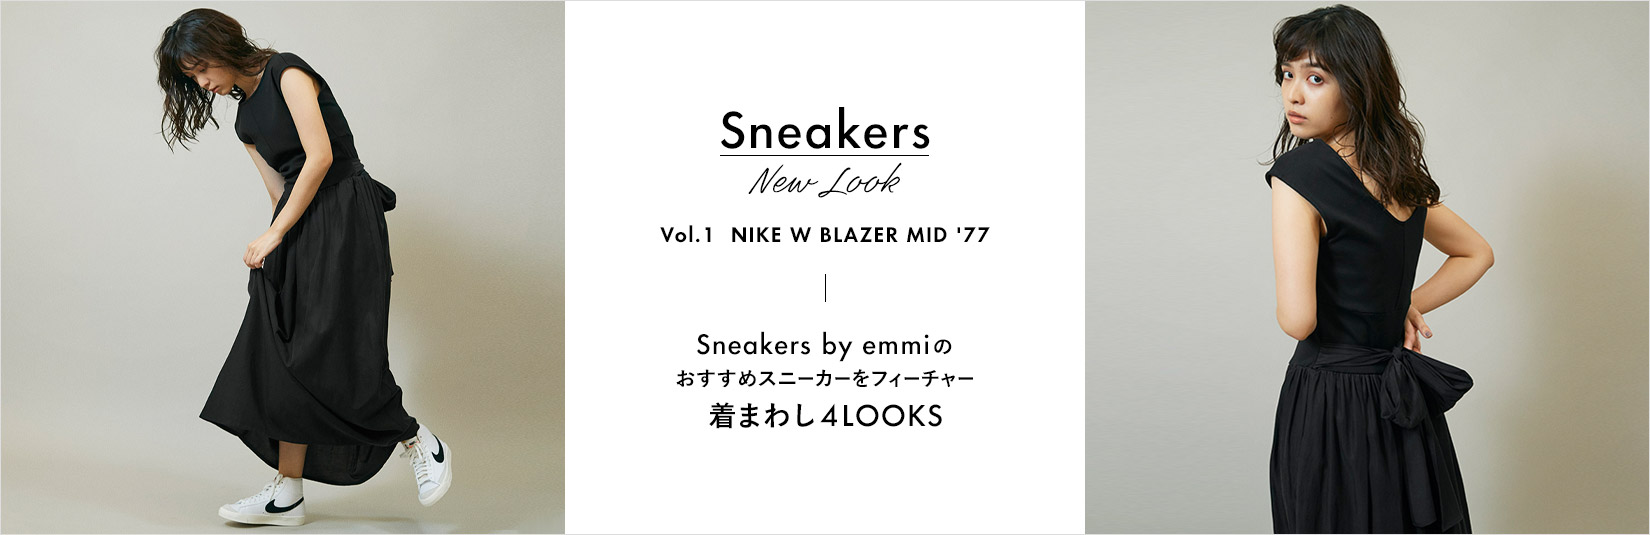 Sneakers New Look Vol1 NIKE